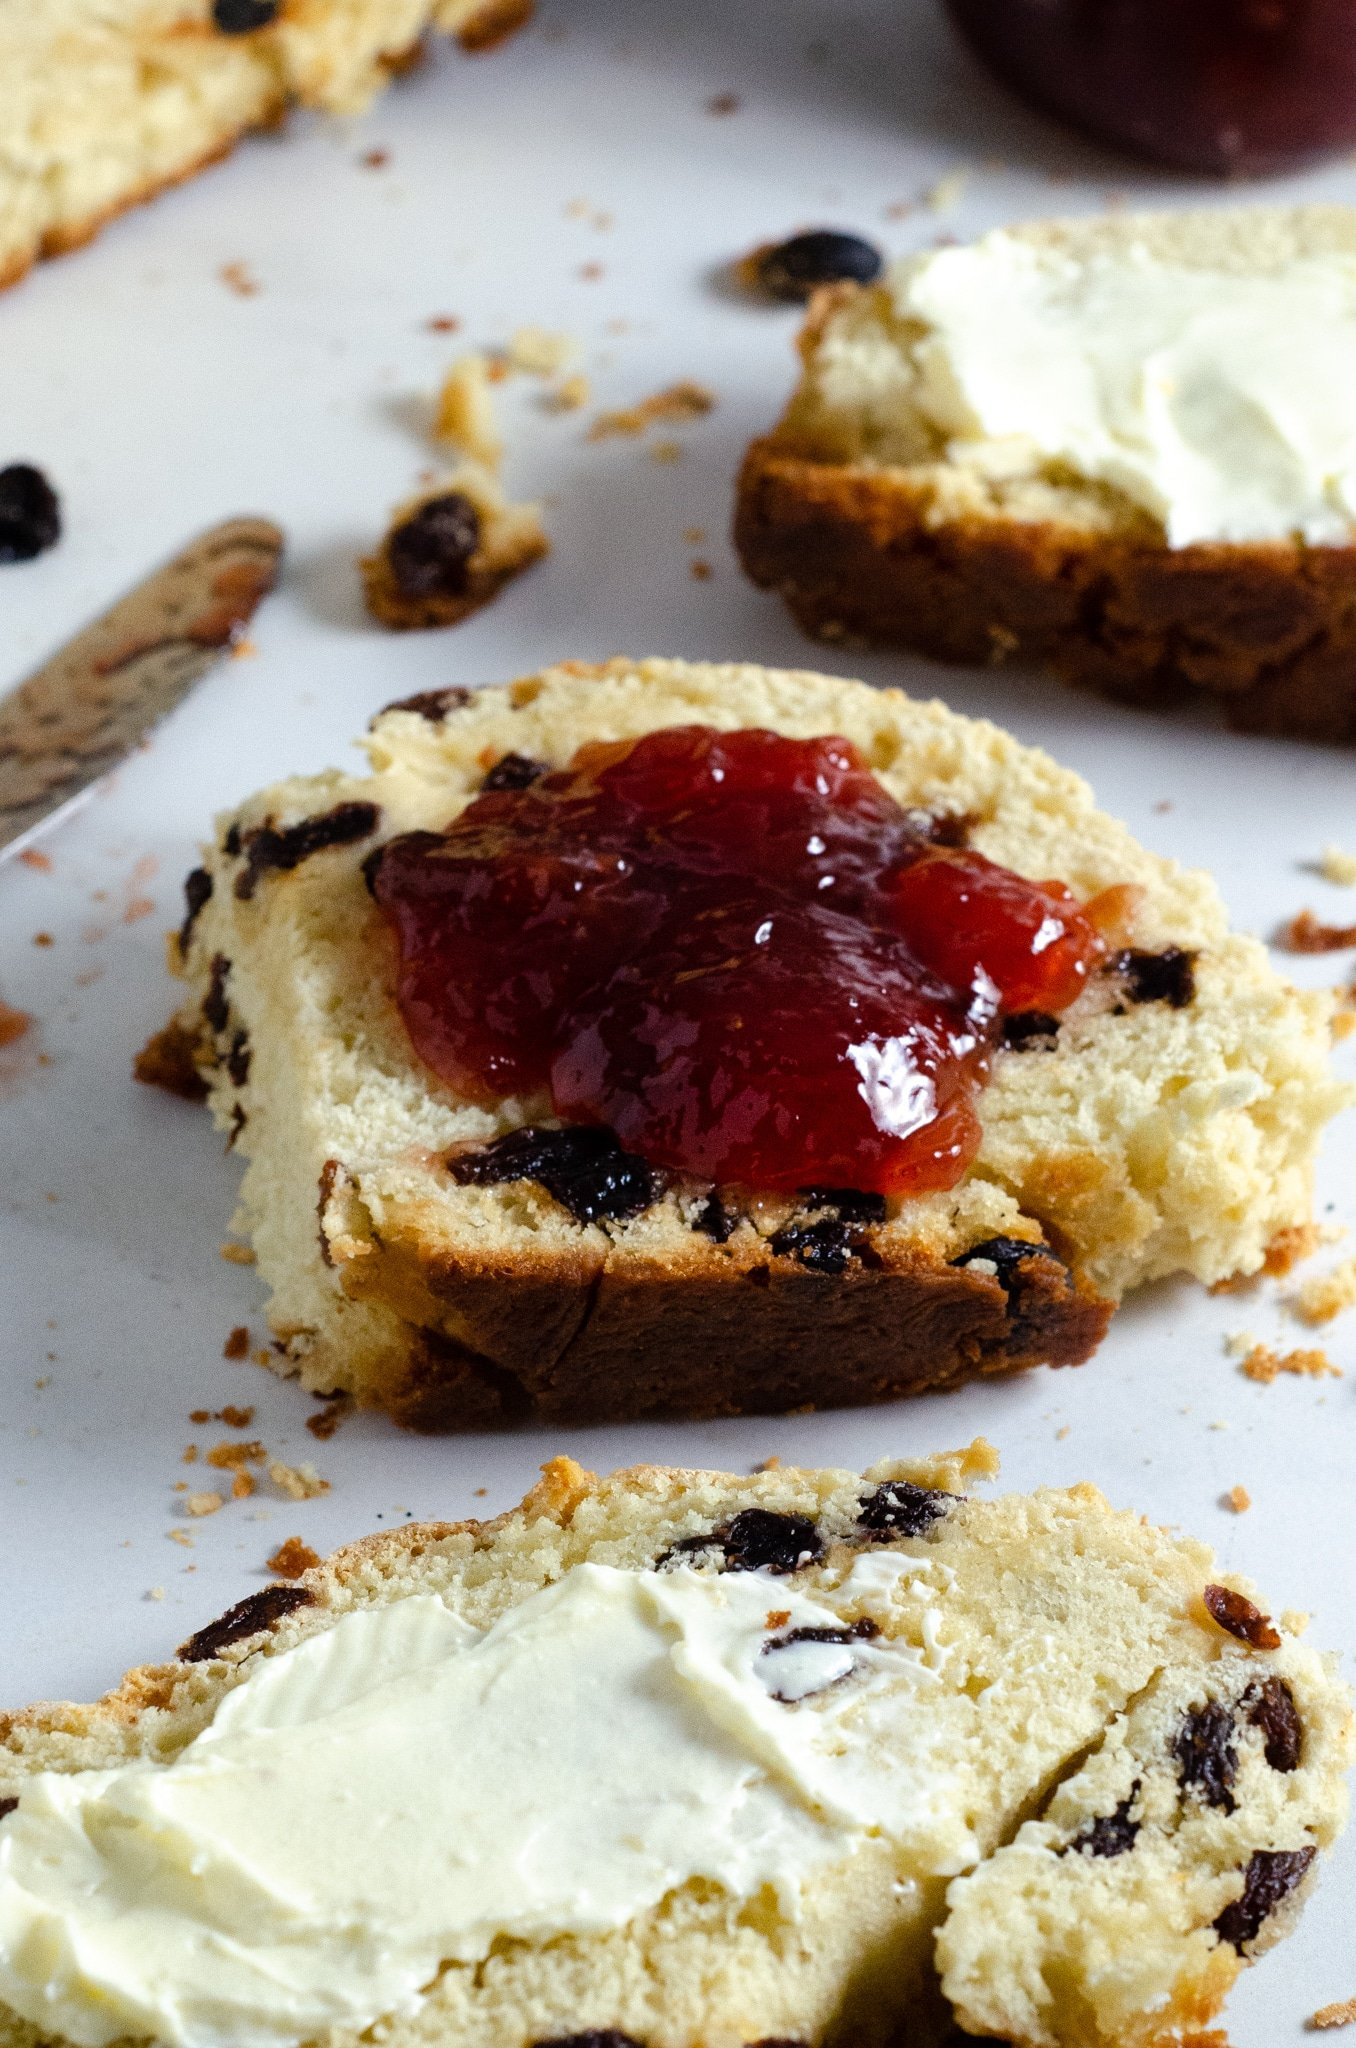 Irish Soda Bread with Jam. This Irish Soda Bread is a quick and easy bread recipe you can whip together and spoil your family with. Also known as quick bread, It's a no yeast bread recipe that will take over your home with the sweet smell of fresh-baked bread.